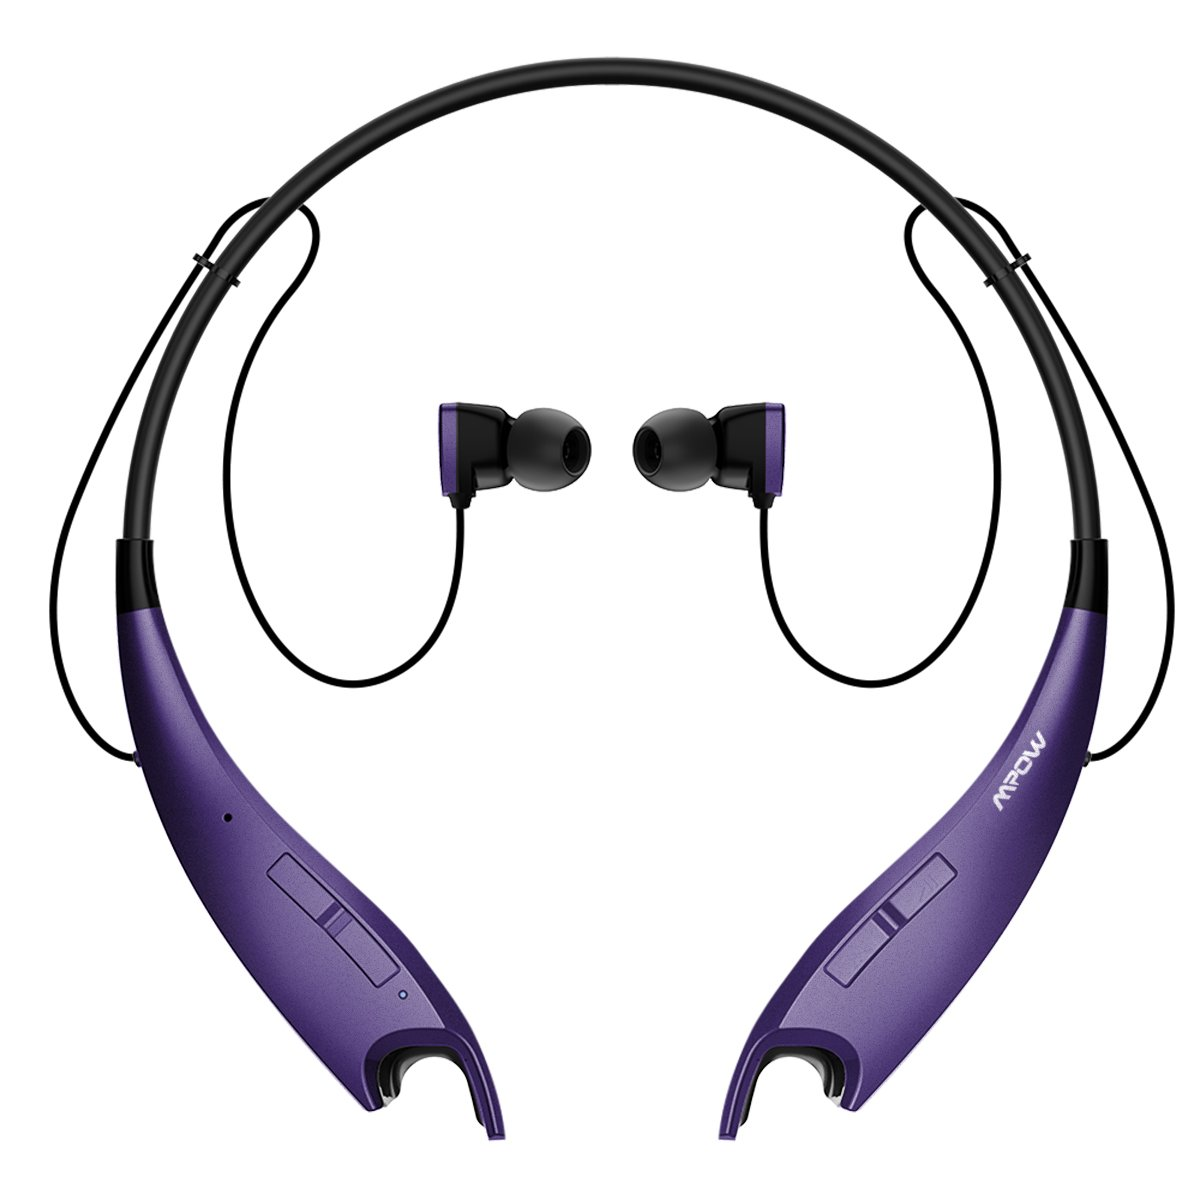 Mpow Jaws V4.1 Bluetooth Headphones Wireless Neckband Headset Stereo Noise Cancelling Earbuds w/Mic (Purple) by Mpow